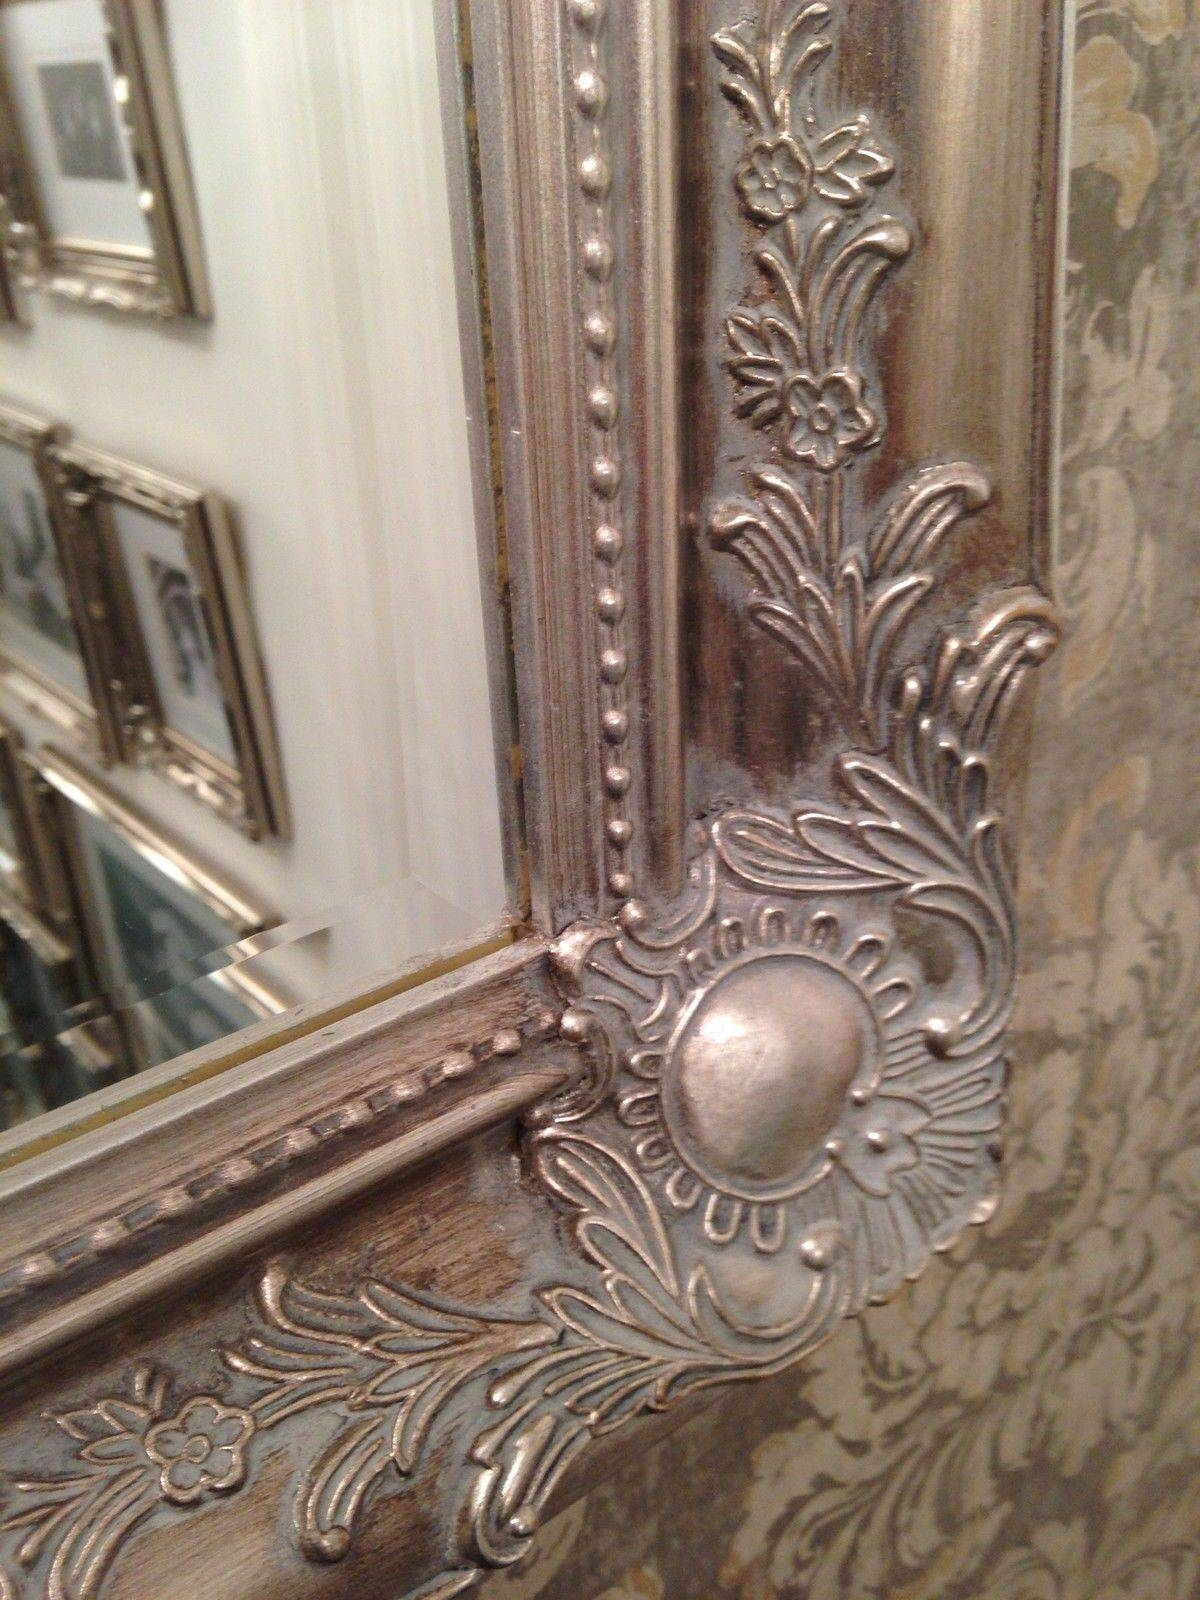 Ornate Silver Bathroom Mirror. Carved Ornate Framed Silver Wall intended for Large Ornate Silver Mirrors (Image 20 of 25)